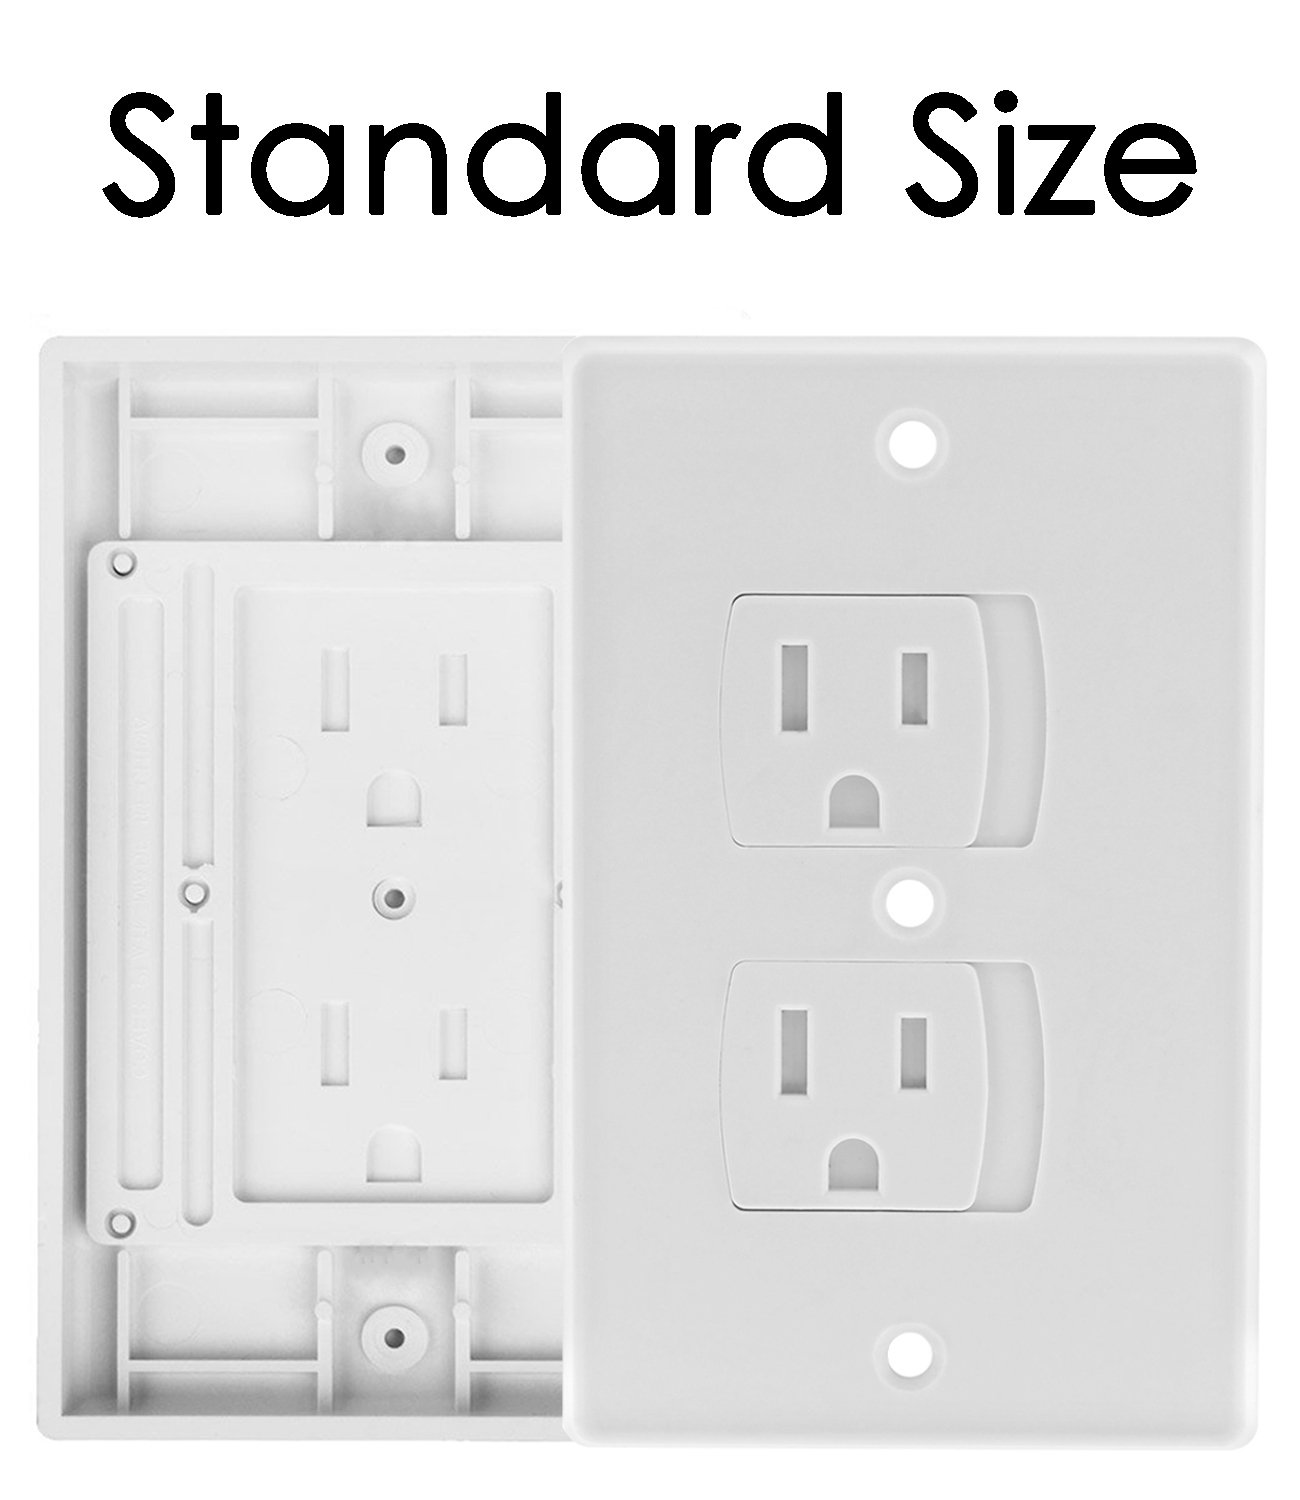 Self Closing Electrical Outlet Covers, Child Proof Safety Universal Wall Socket Plugs, Automatic Sliding Cap Cover Standard Wall Outlet Plate (8 Pack) by Baby Dröm (Image #3)